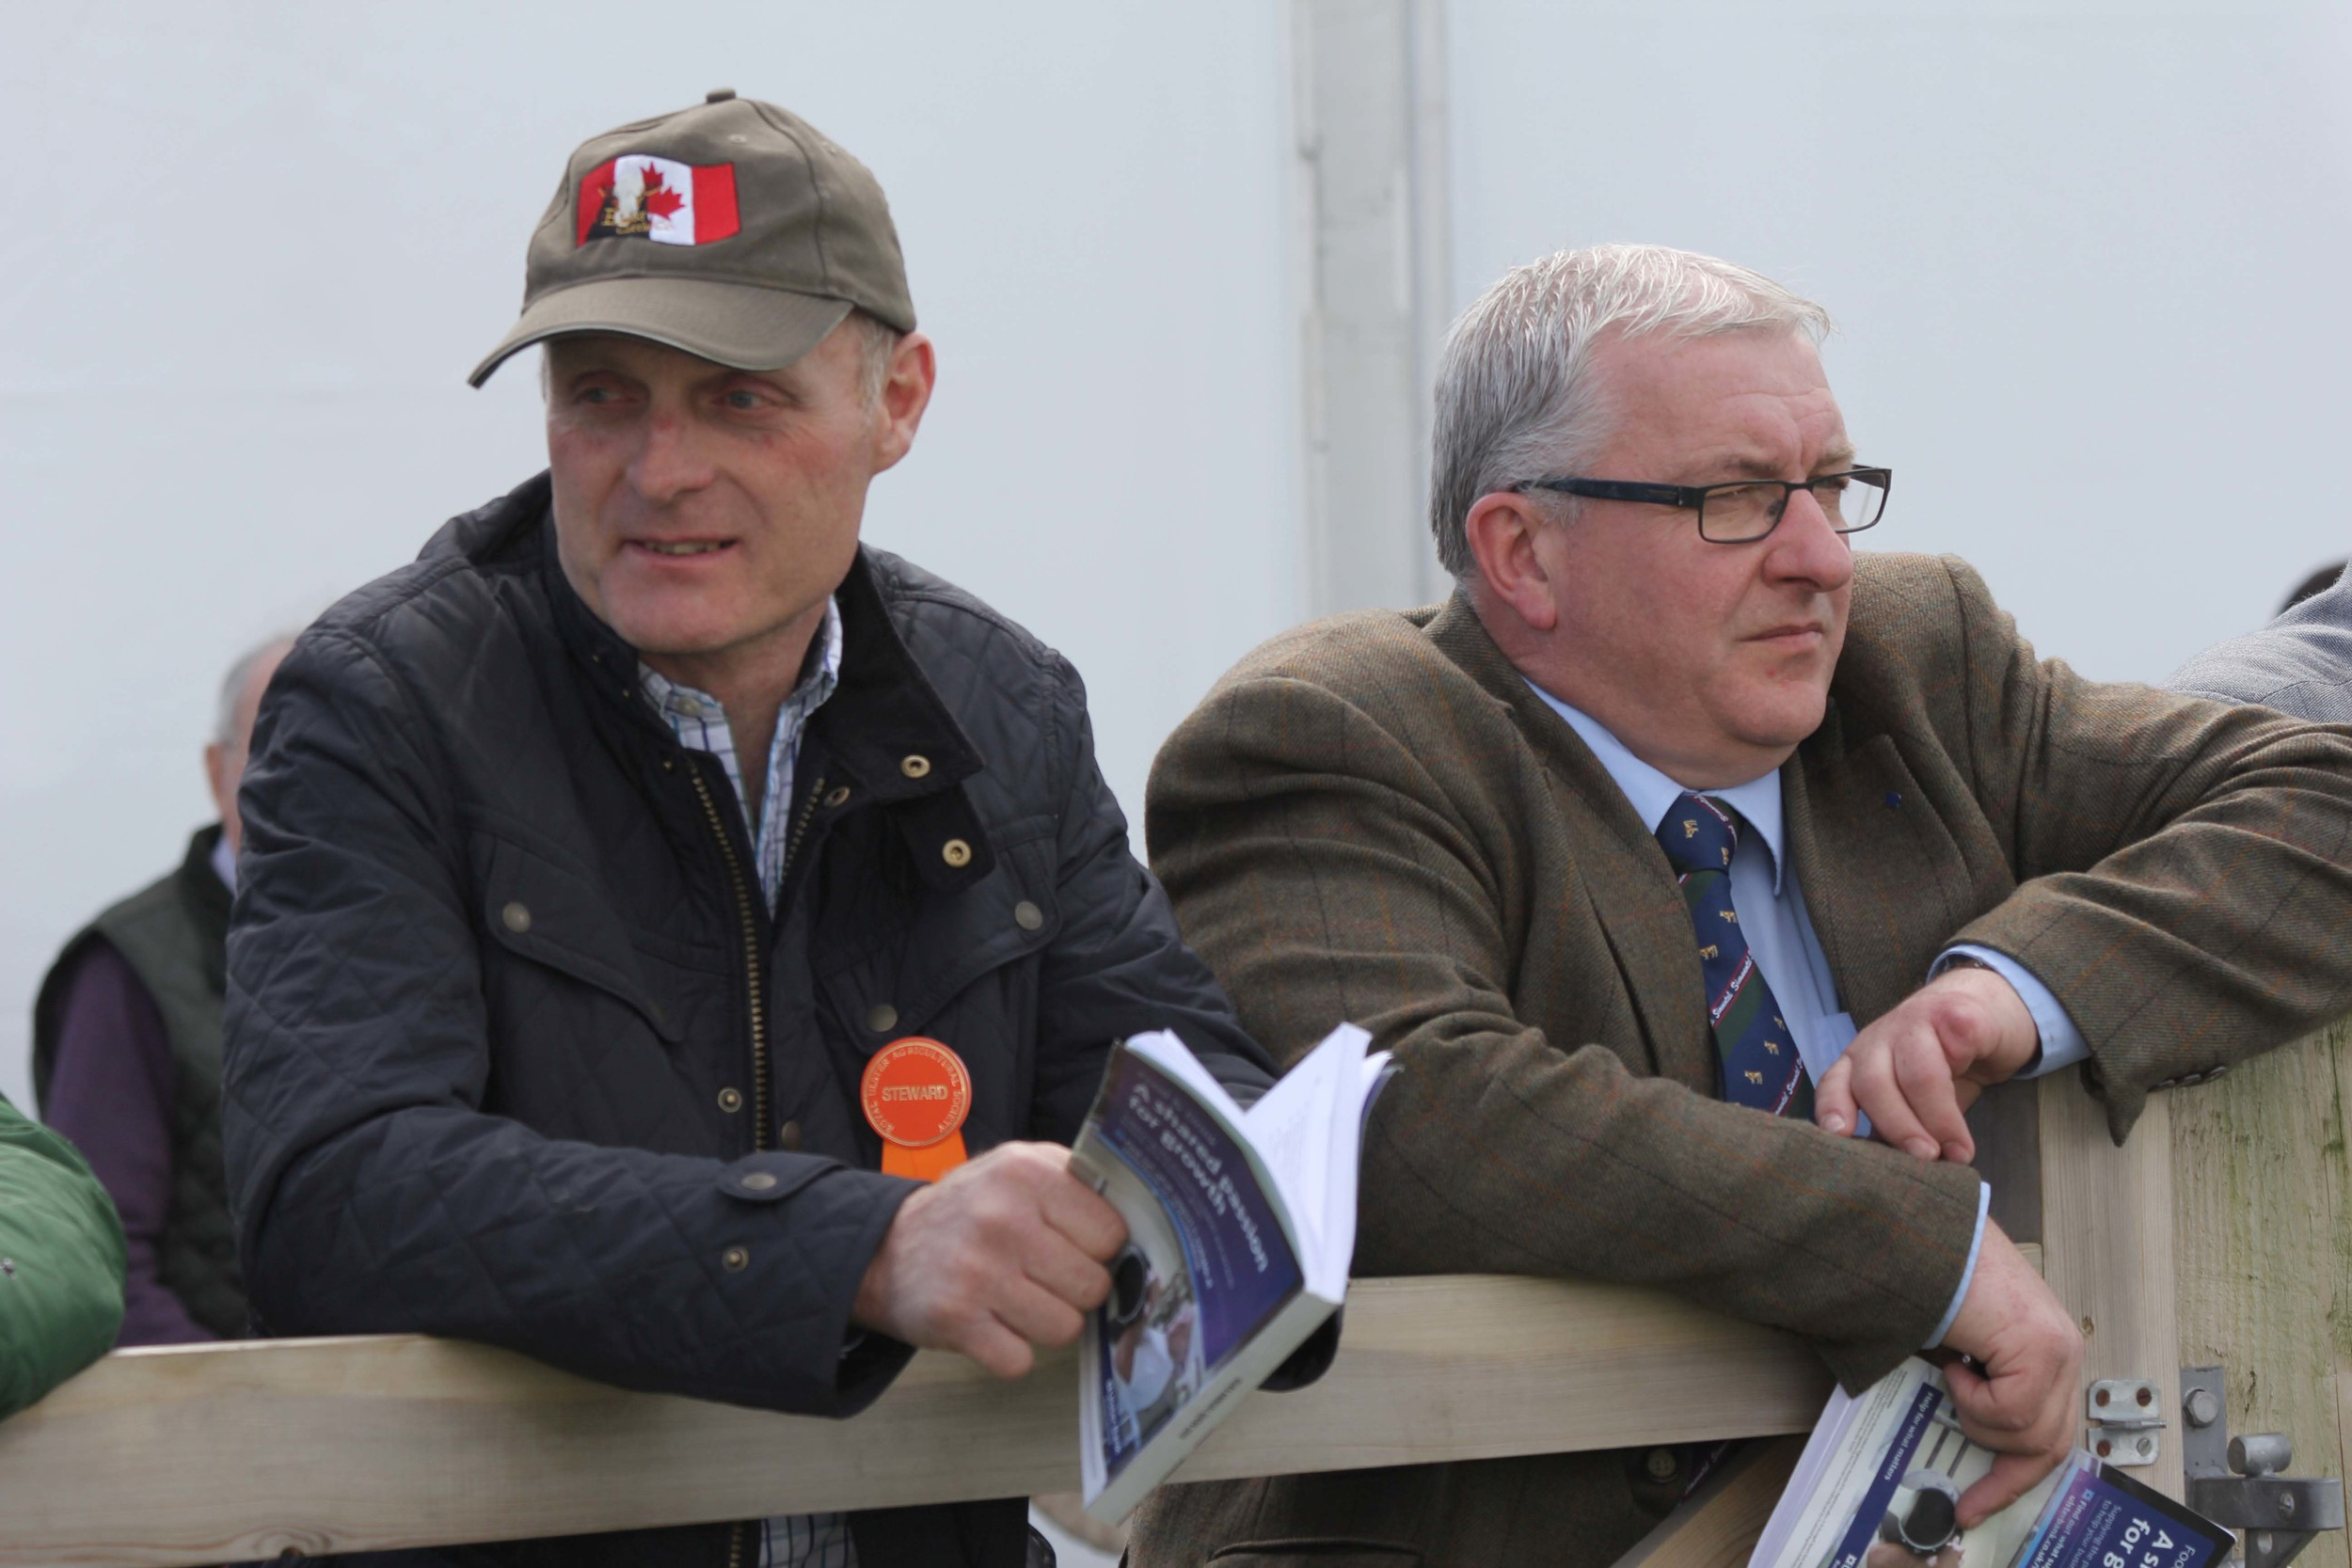 Keeping an eye on the judging at Balmoral Show are Michael Robson, Doagh, and Neil Shand, chief executive of the British Simmental Cattle Society.